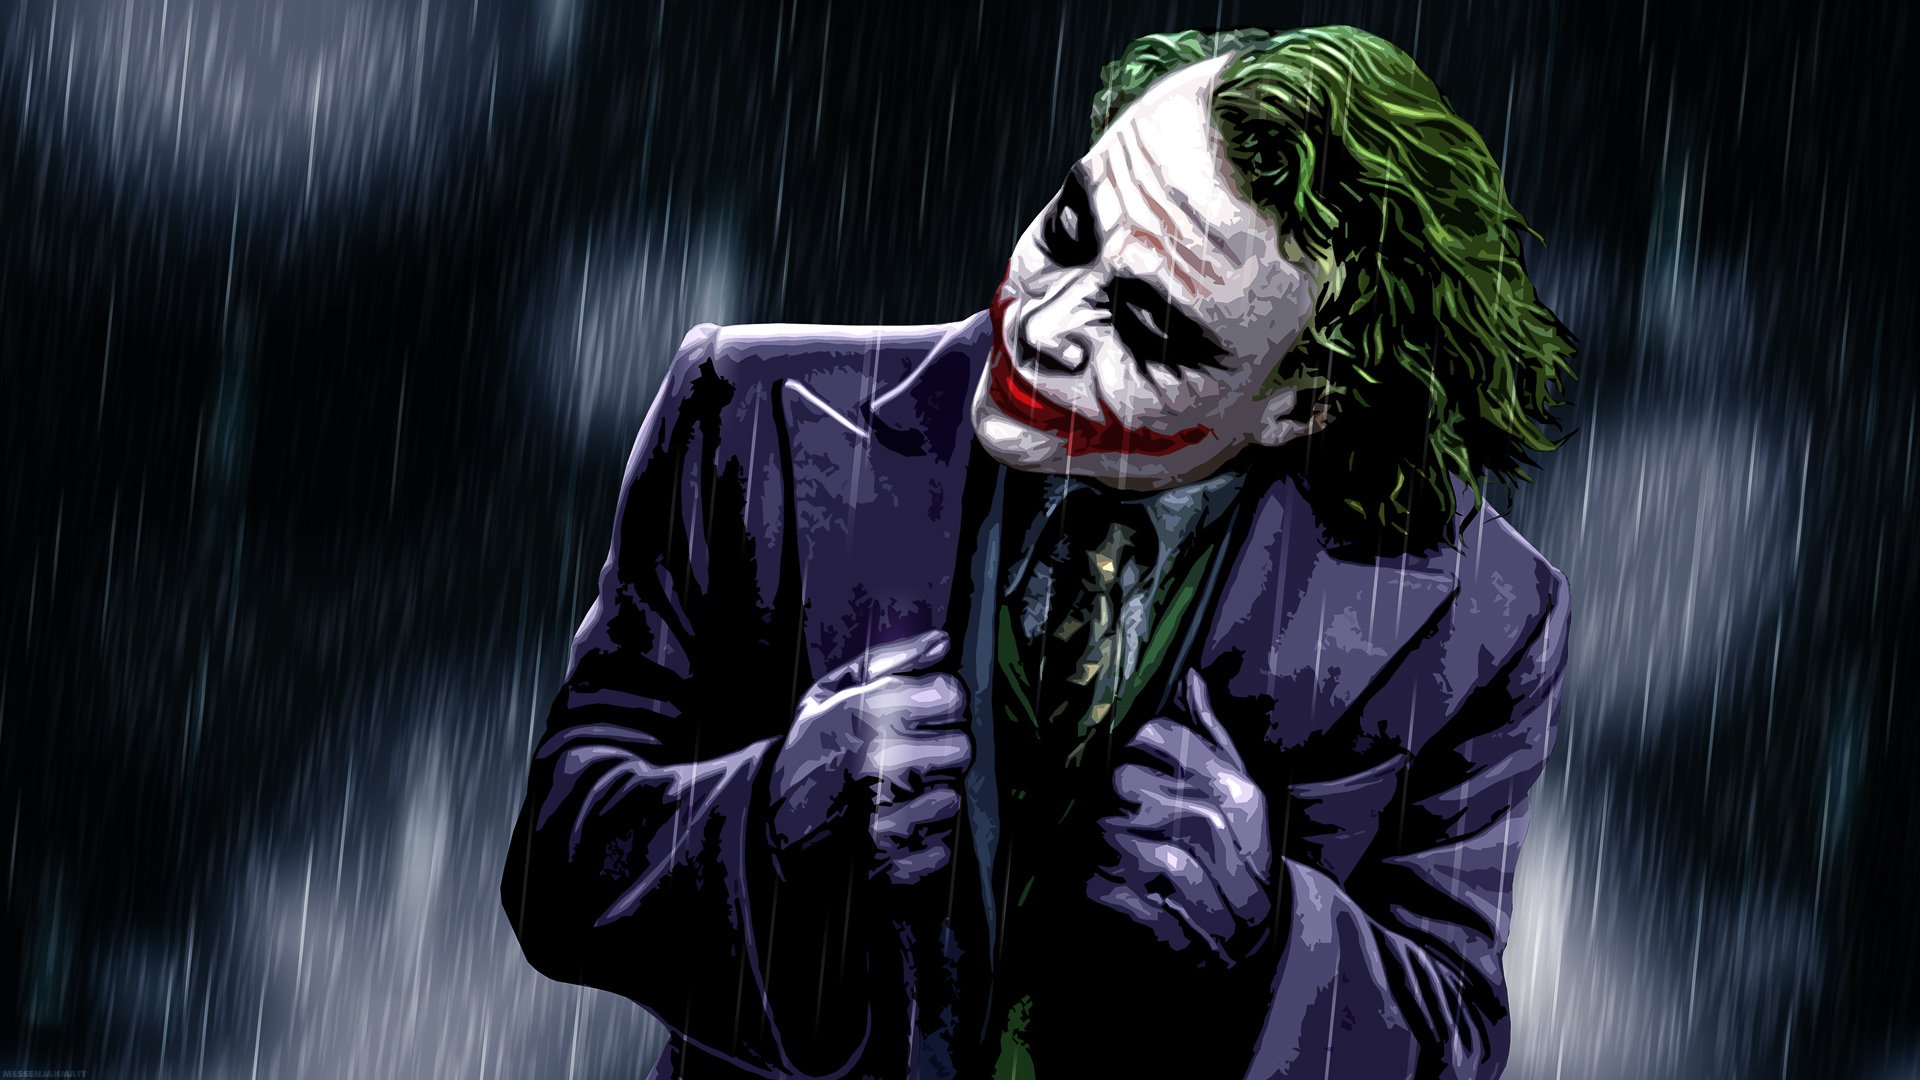 Batman Joker Hd Wallpaper